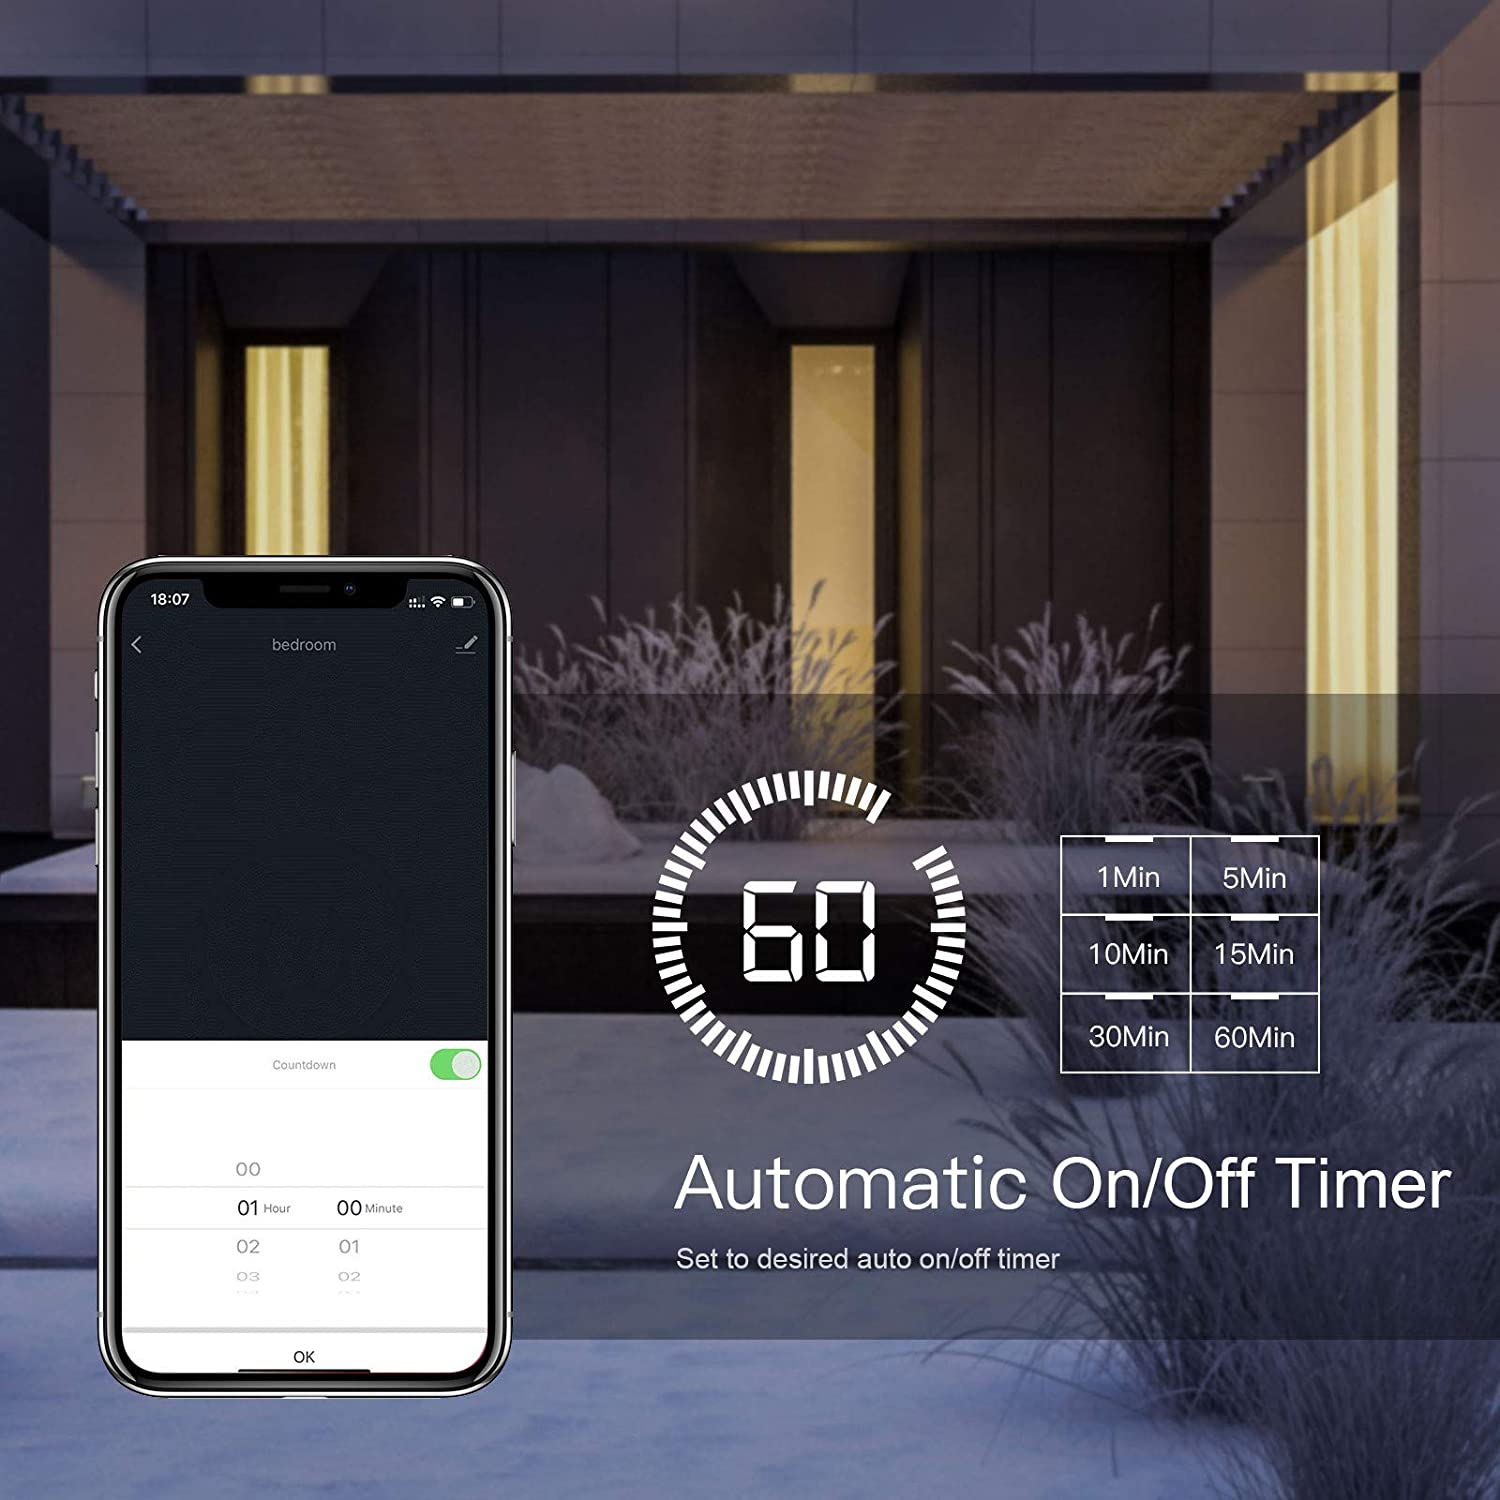 Moes 3 Way Wifi Smart Switch For Light Fan Compatible With Alexa One Two Lights Wiring Diagram 2 Hook Up Best And Google Home No Hub Required Life App Provides Control From Anywhere